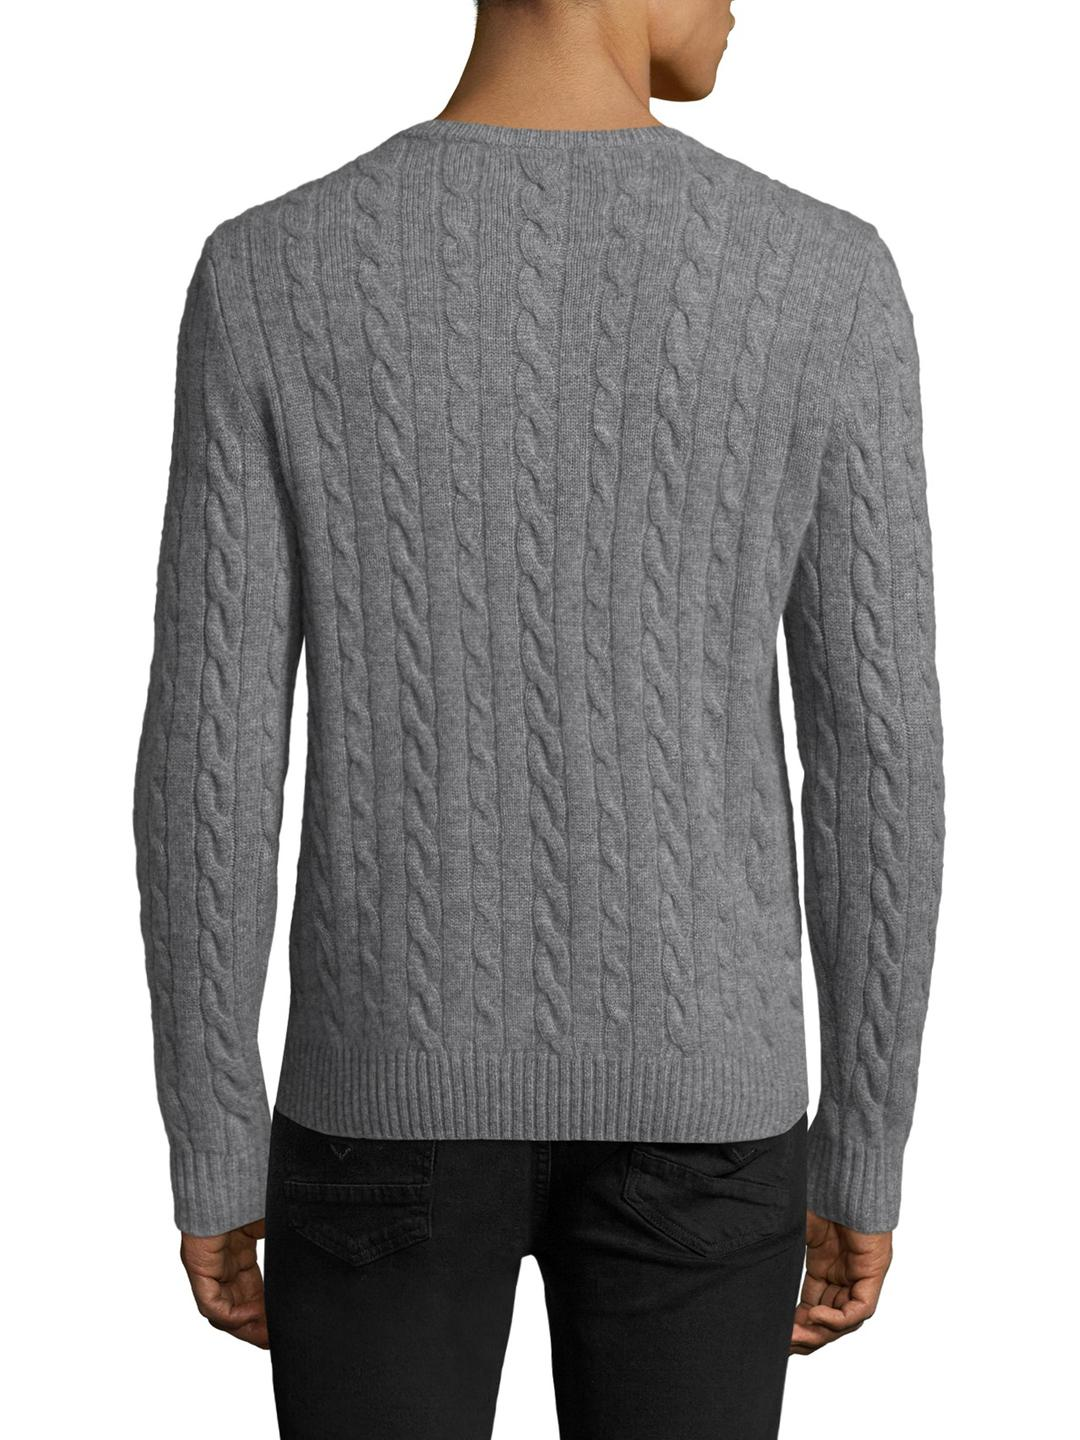 Saks fifth avenue Cashmere Cableknit Sweater in Gray for Men | Lyst